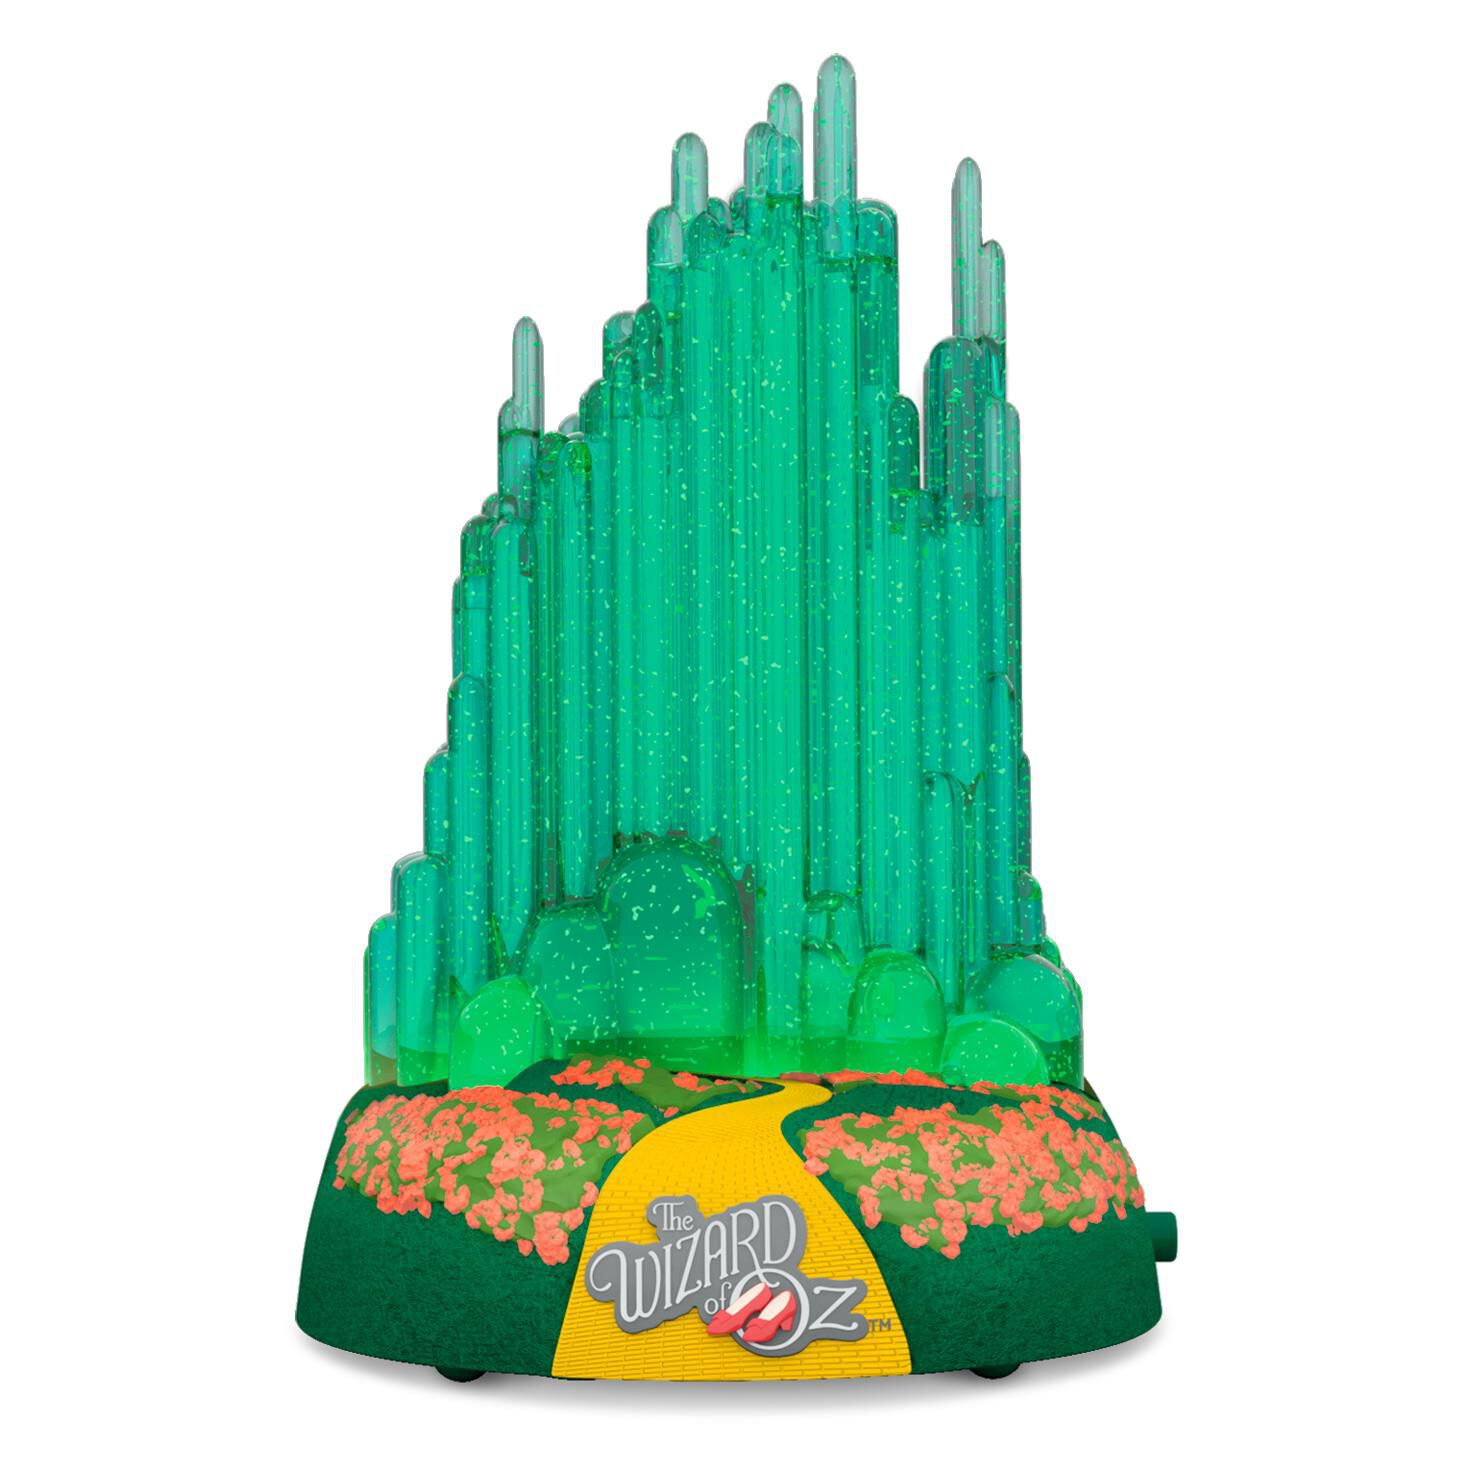 Wizard of oz christmas decorations uk - The Wizard Of Oz Emerald City Musical Ornament With Lights Keepsake Ornaments Hallmark